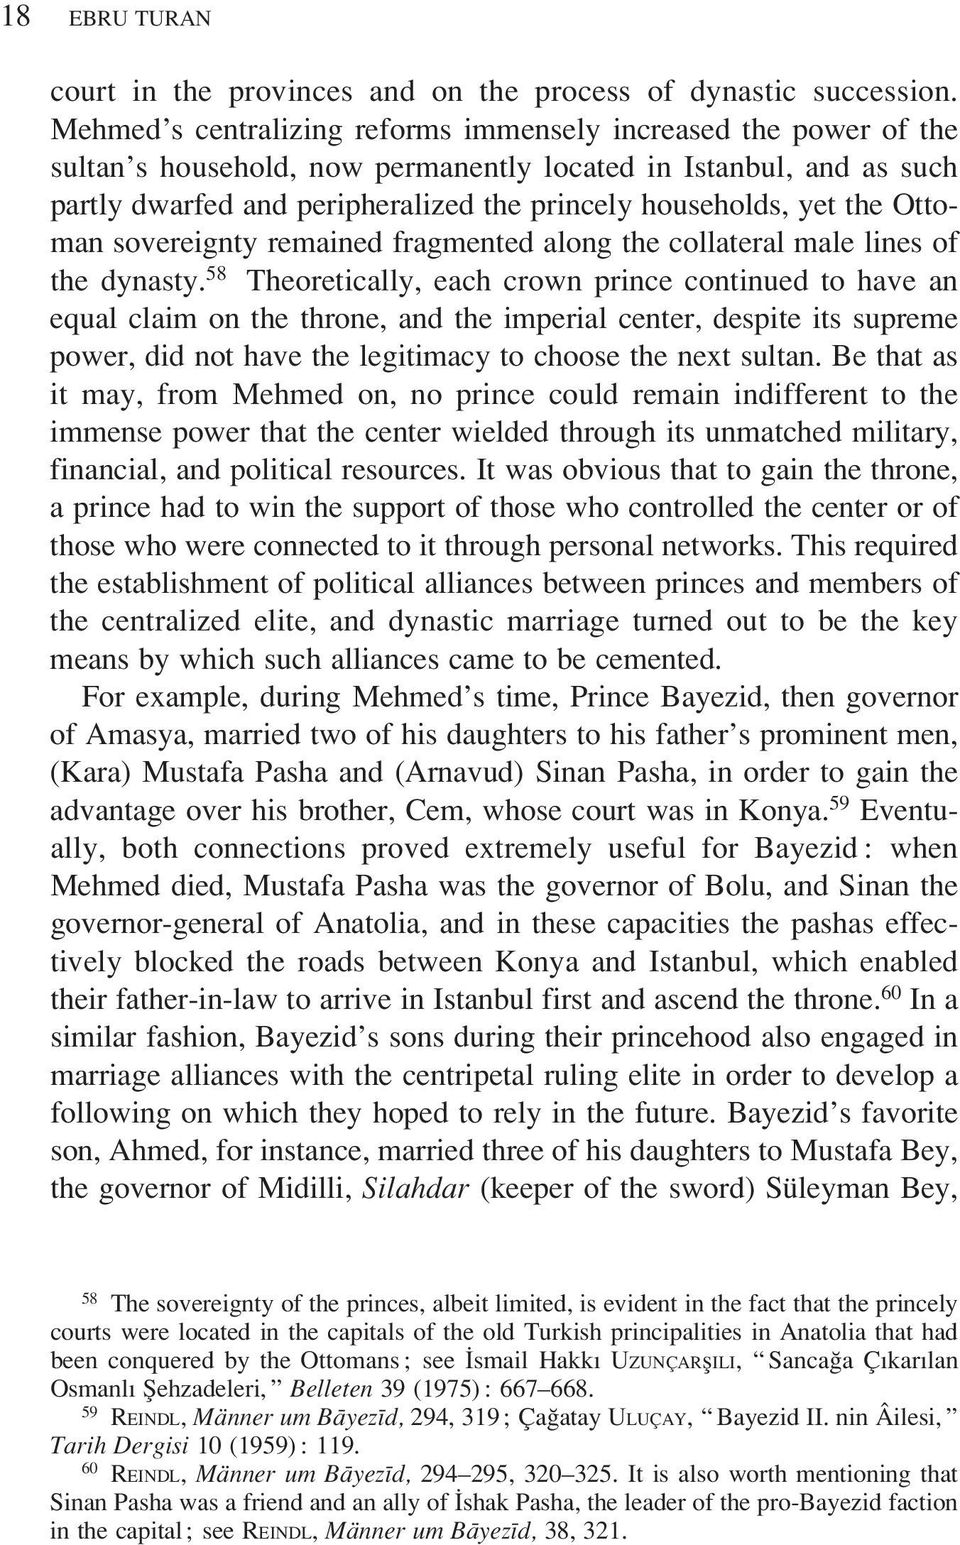 the Ottoman sovereignty remained fragmented along the collateral male lines of the dynasty.